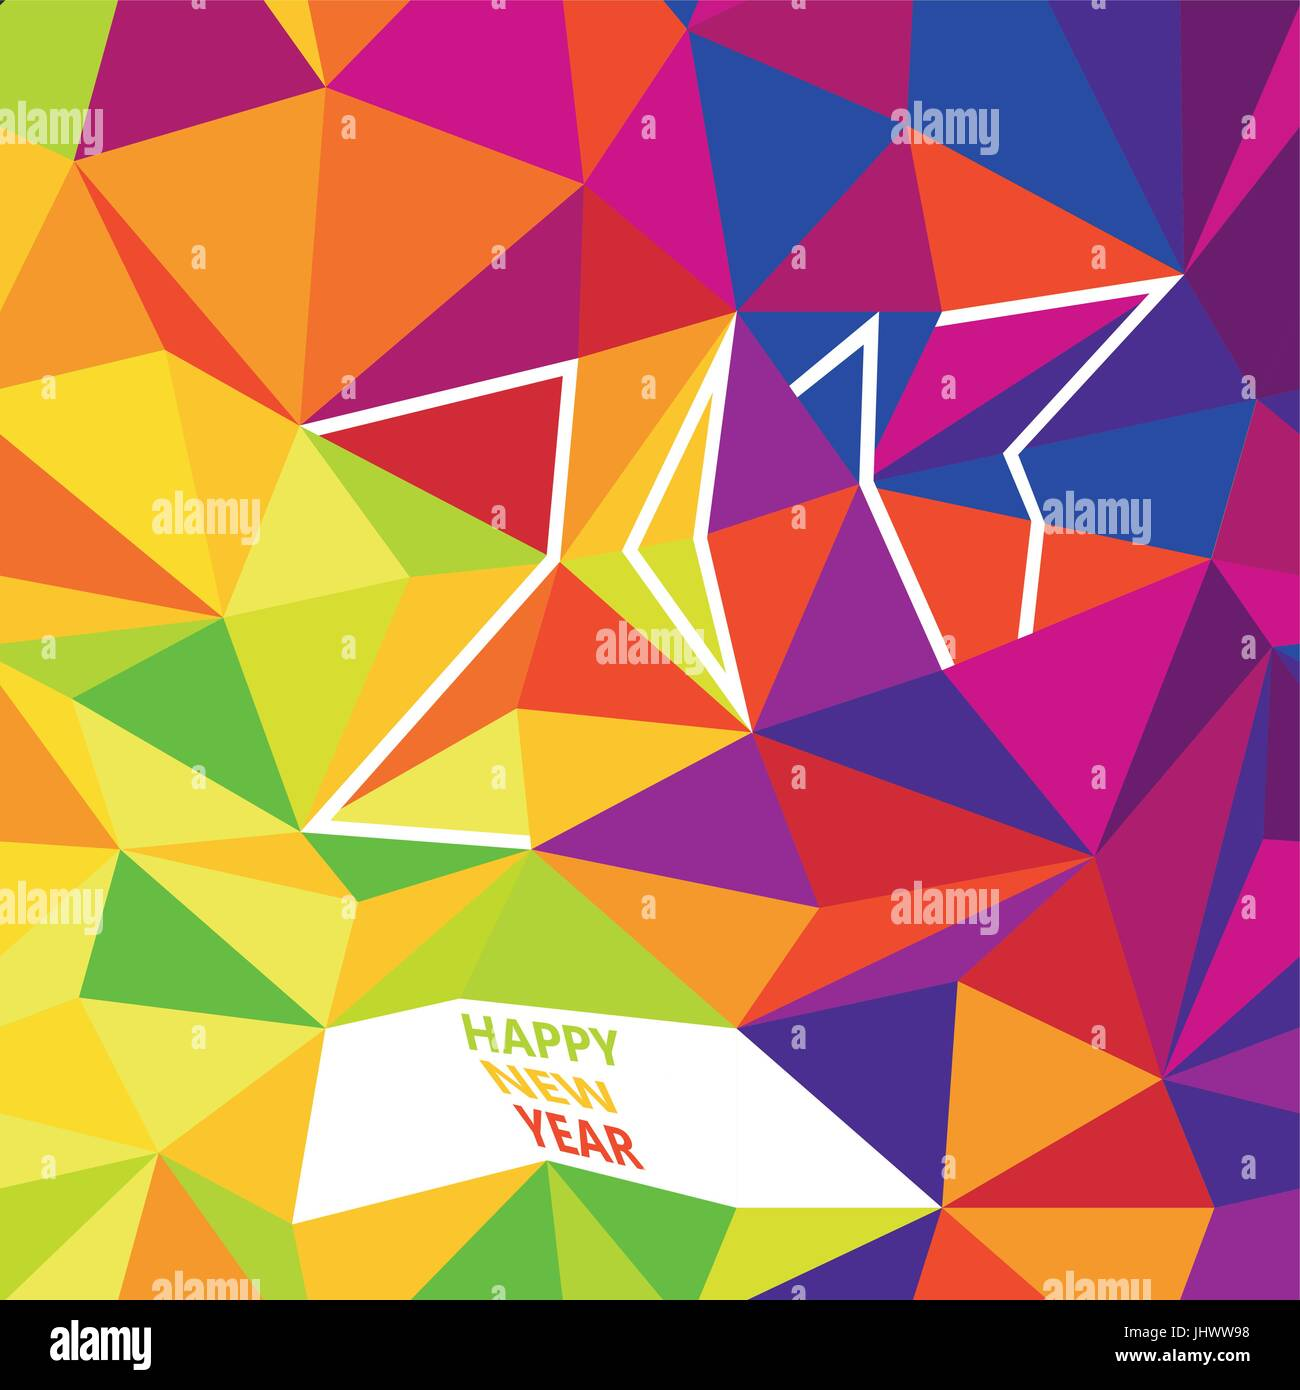 happy new 2017 year greetings typography design new year card template simple colorful design colorful low poly pattern background